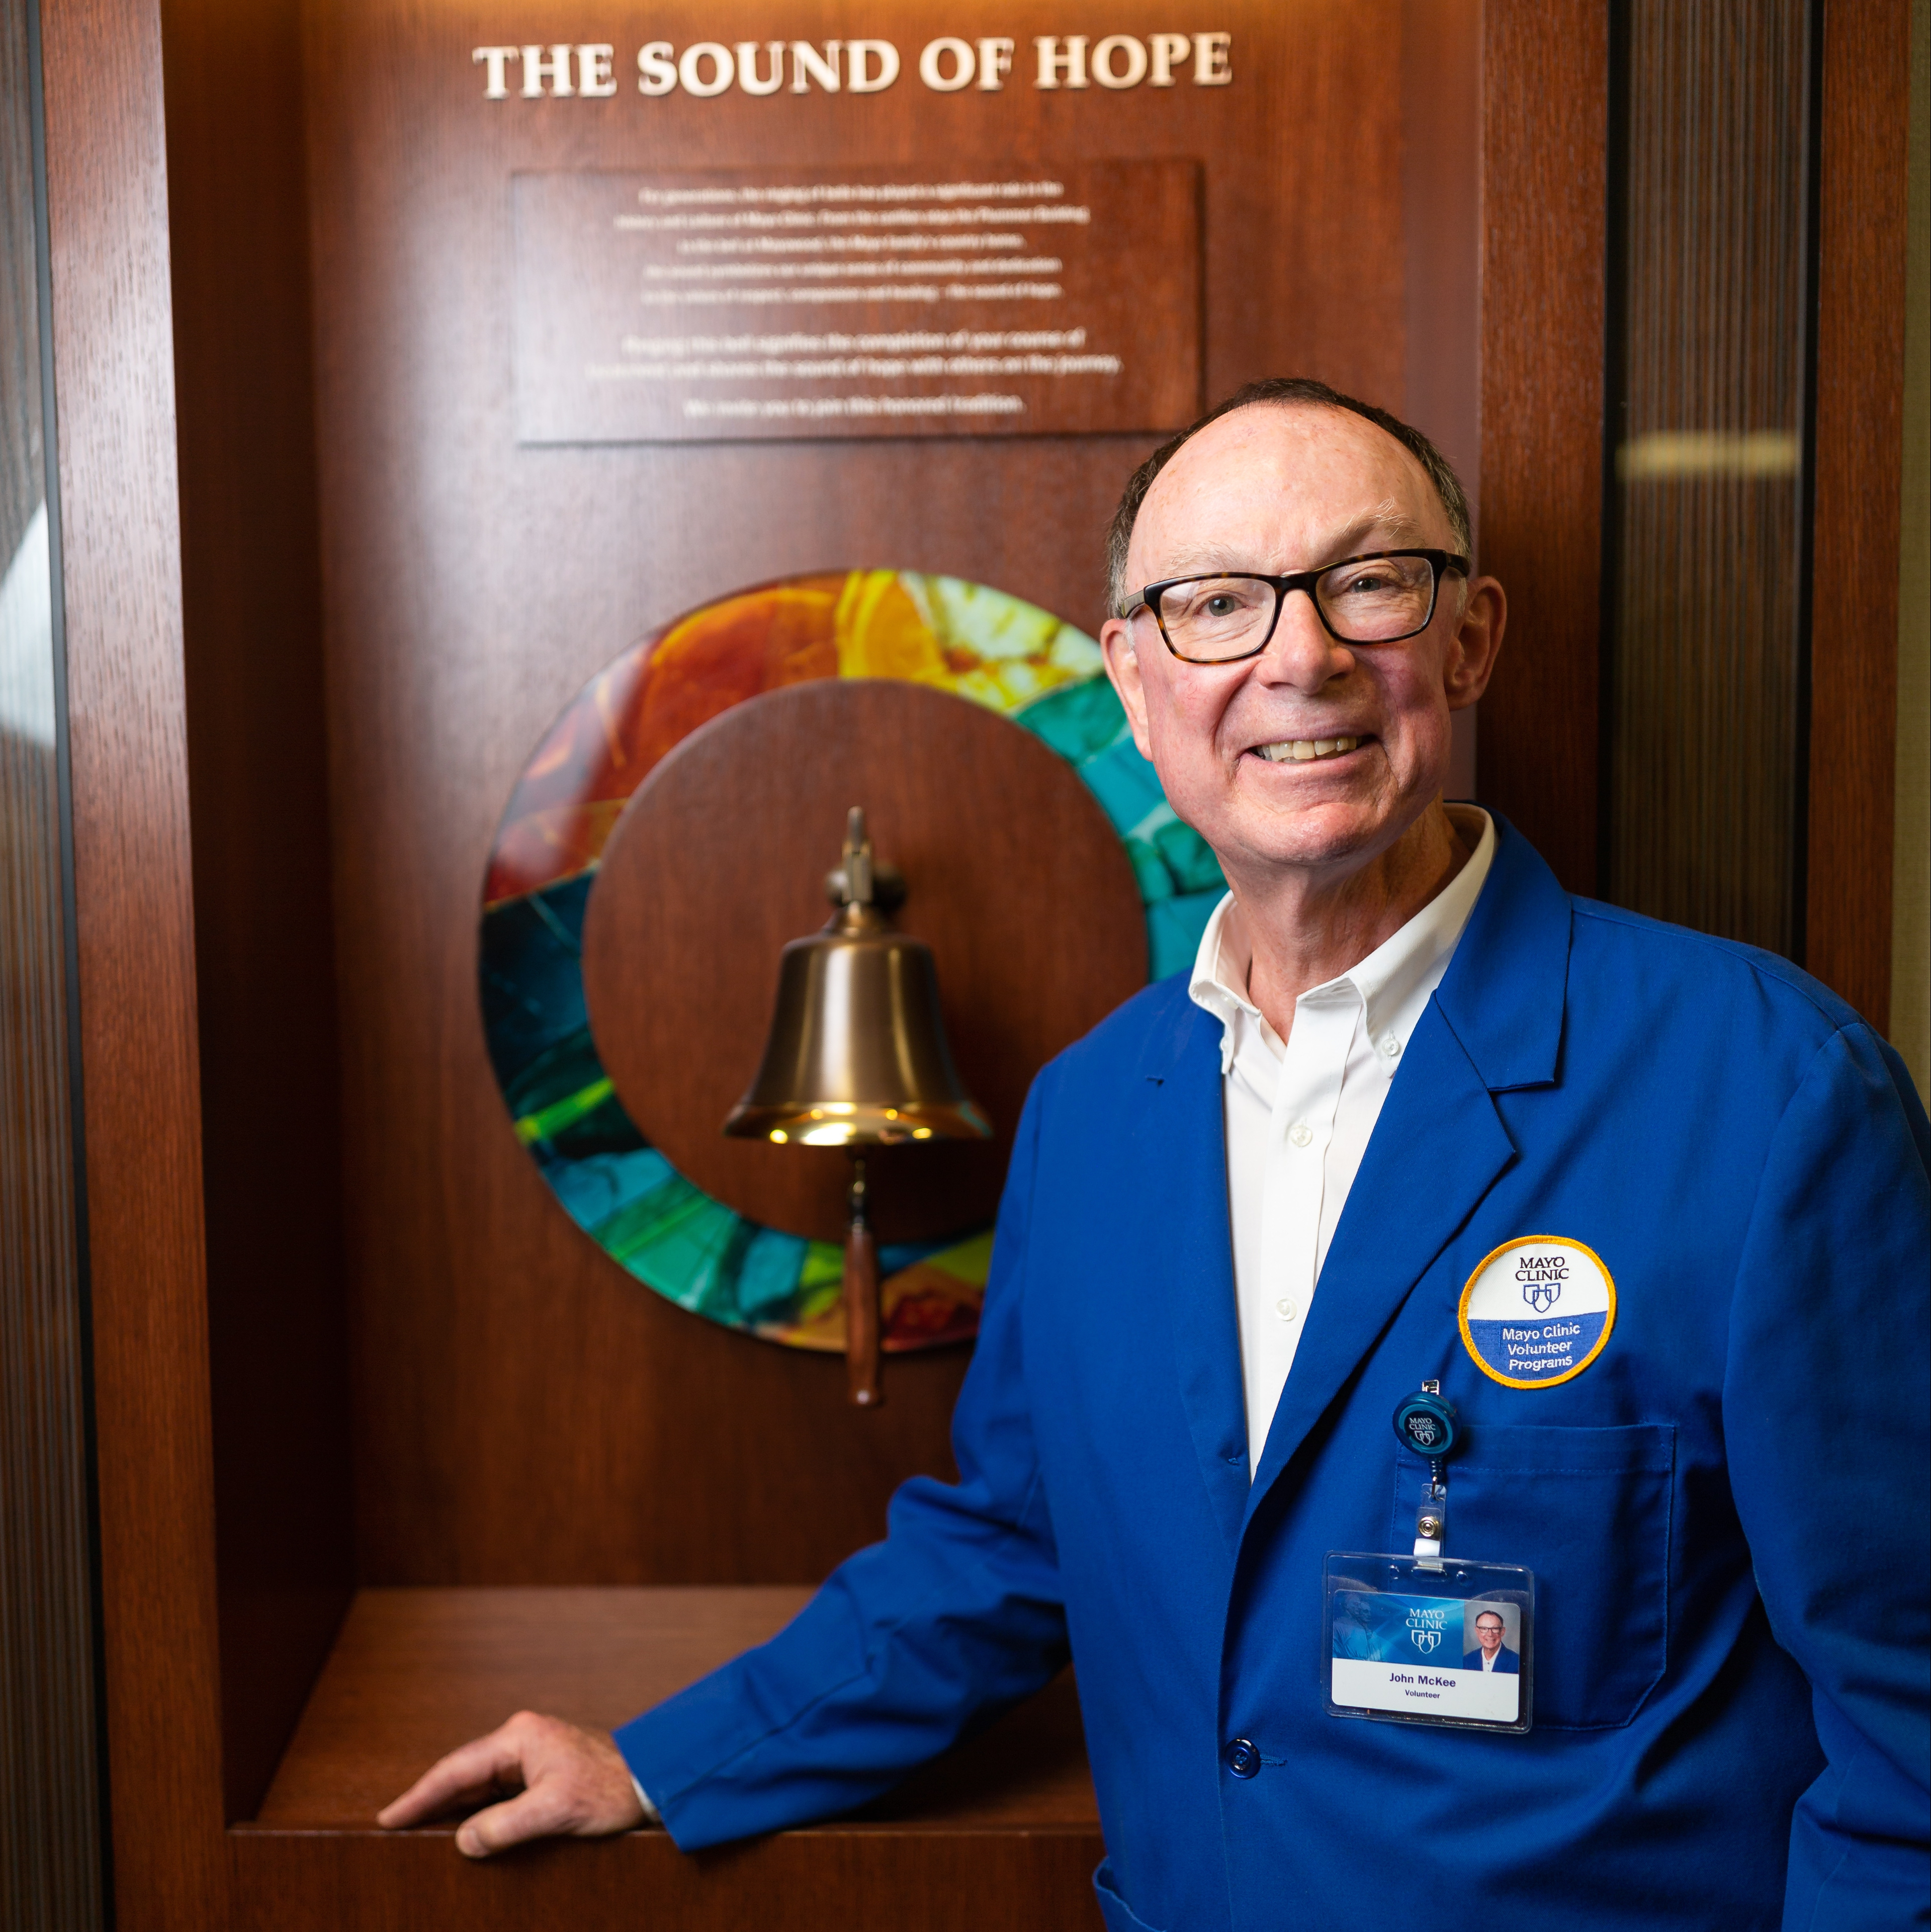 volunteer and cancer patient John McKee standing by the Sound of Hope bell